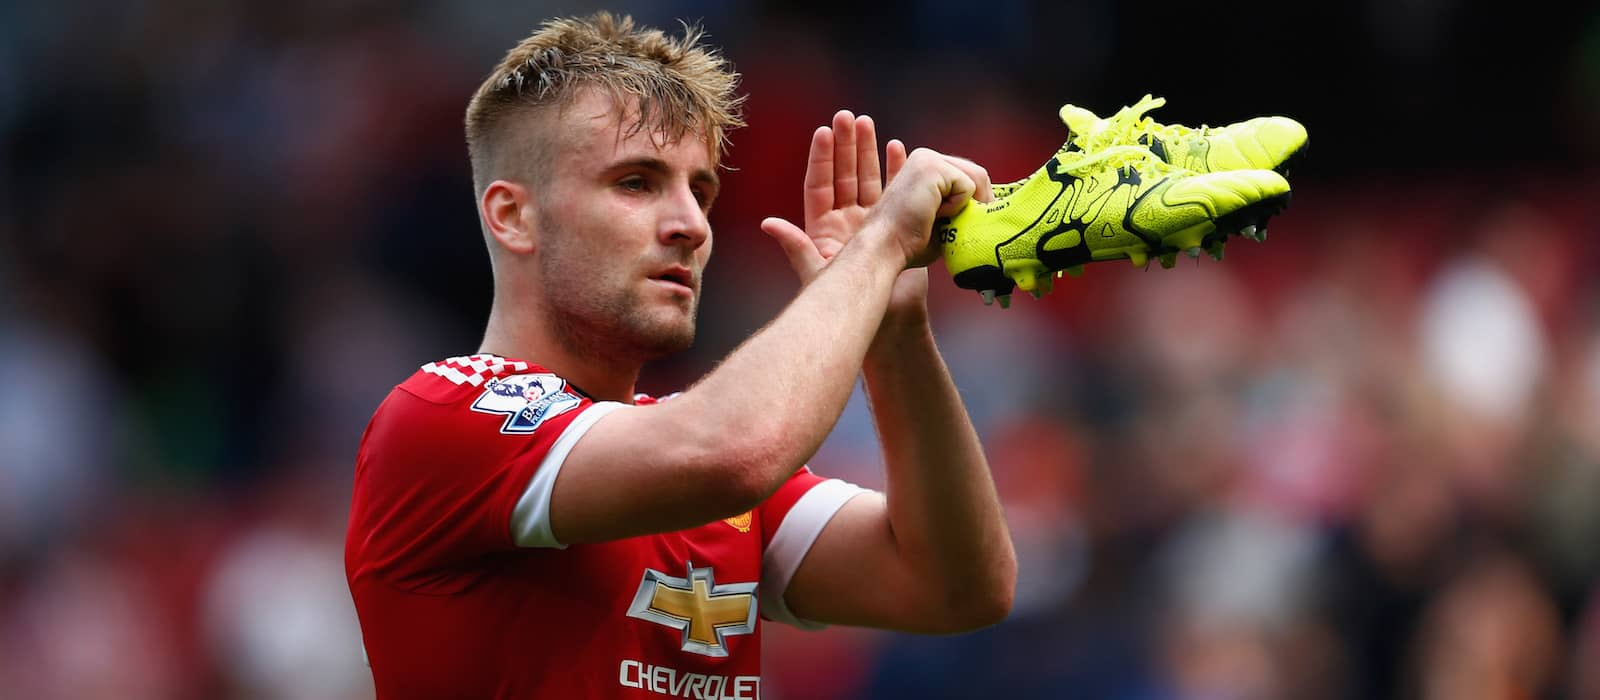 Luke shaw showing he 2019s all man united after indulging on some twitter banter at the expense of rival fans